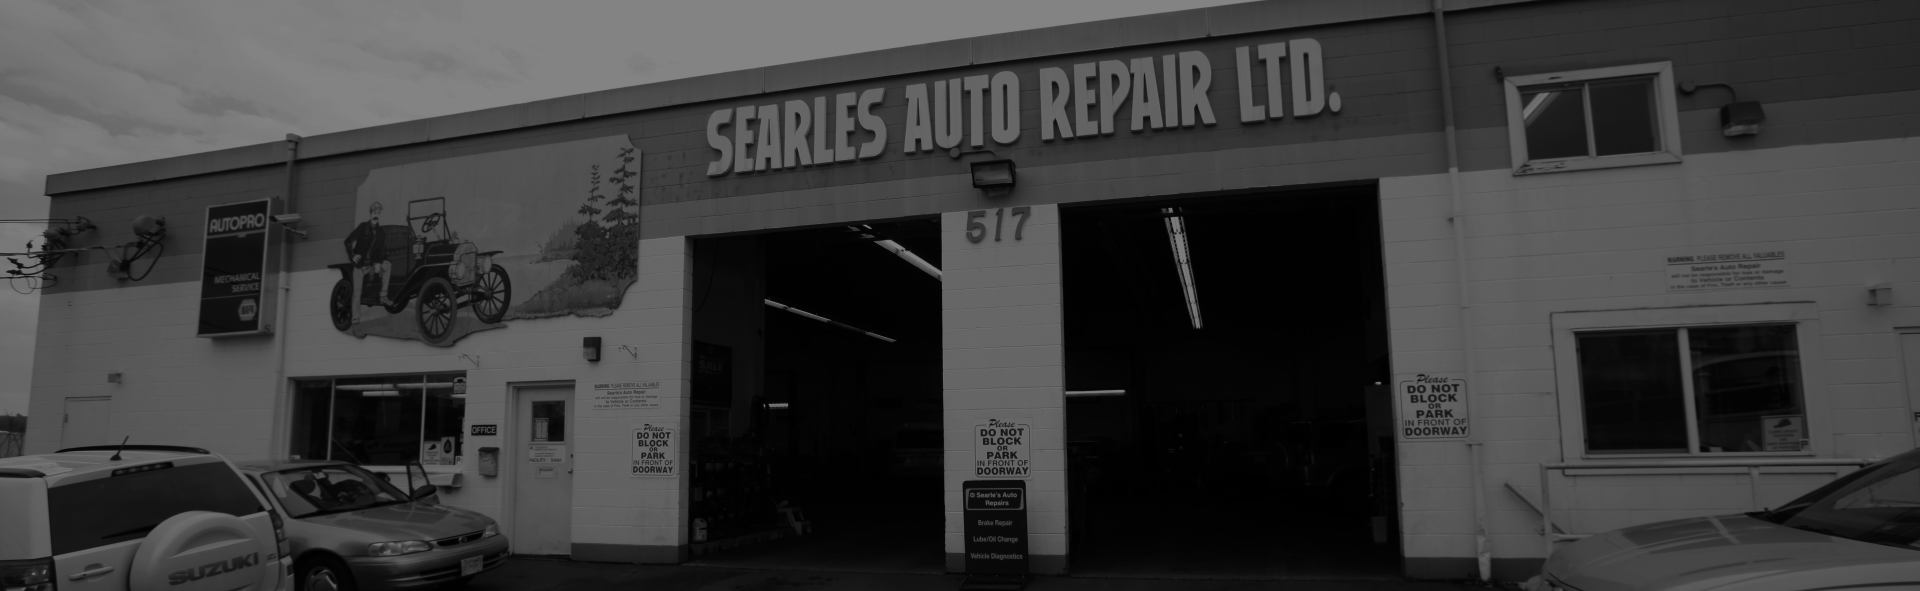 Searles Auto Repair Outside SLider